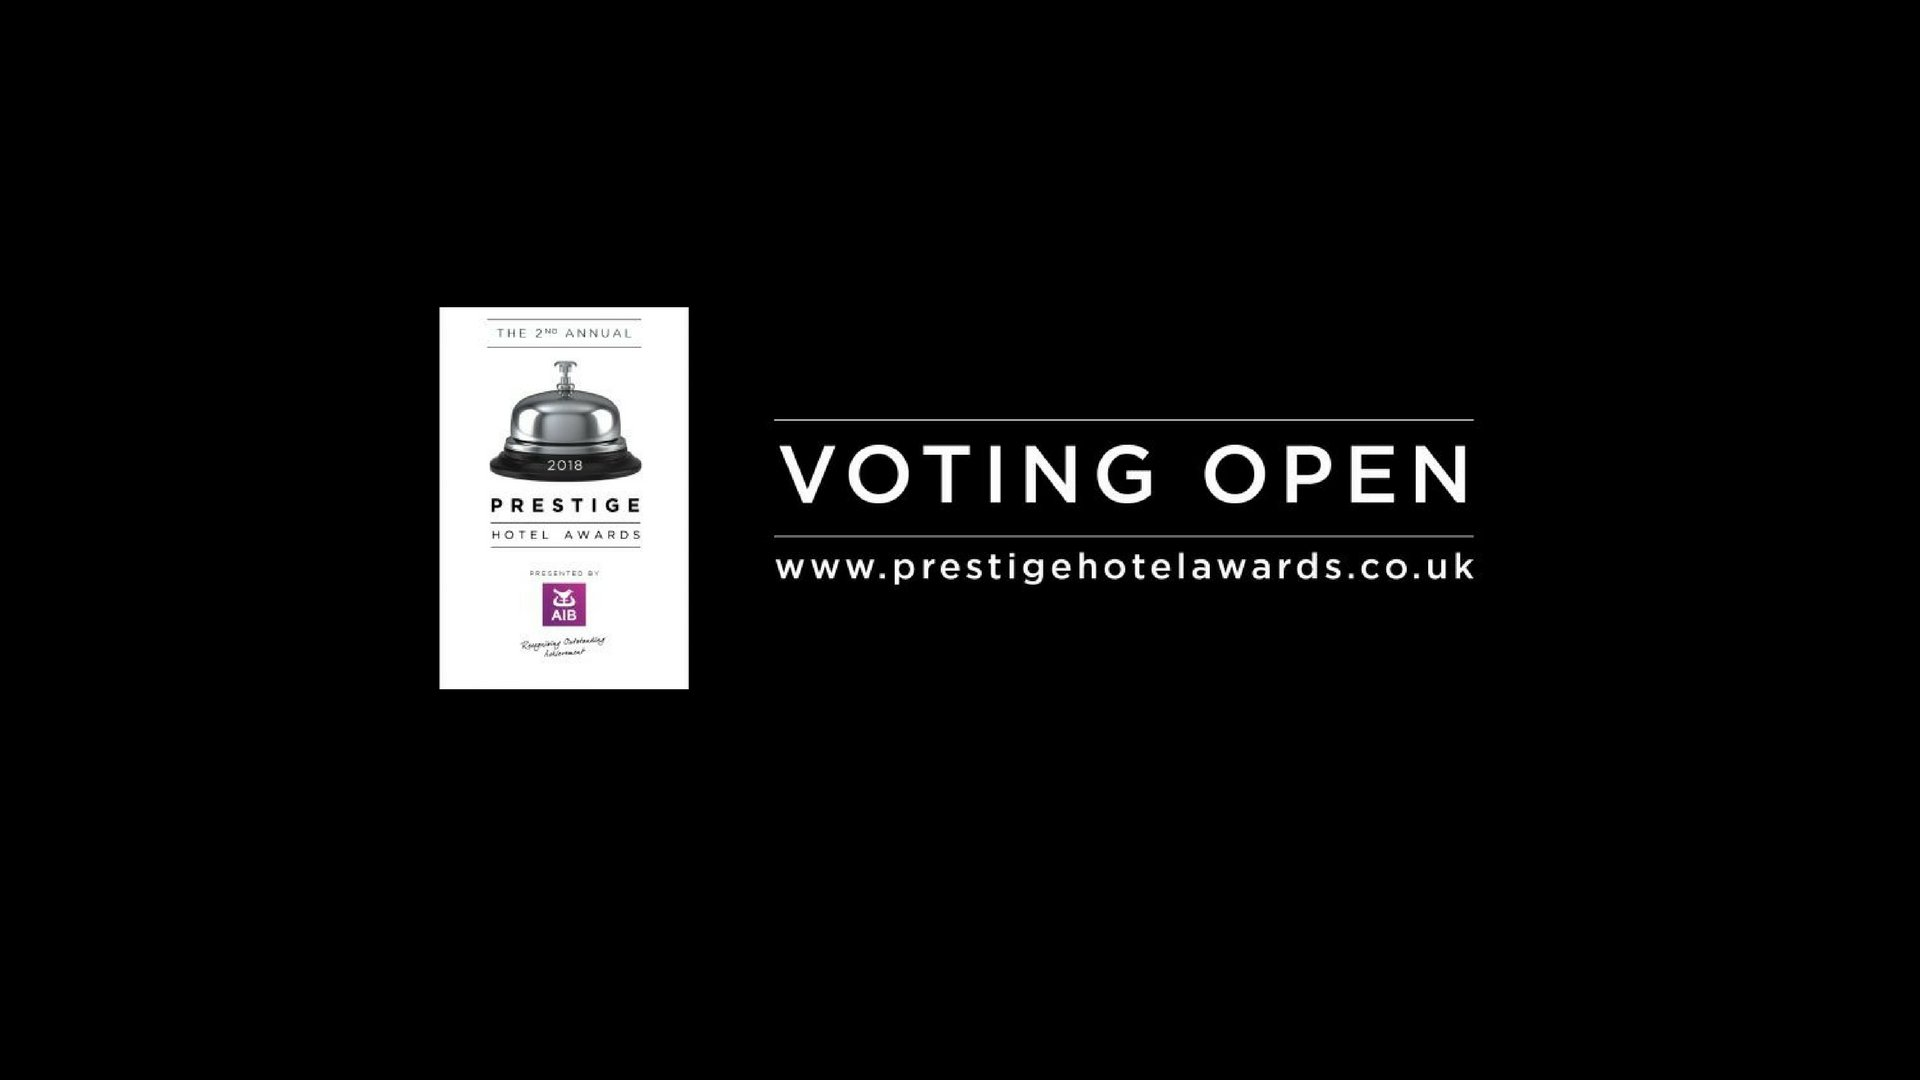 We Have Been Nominated For The Prestige Hotel Awards 2018